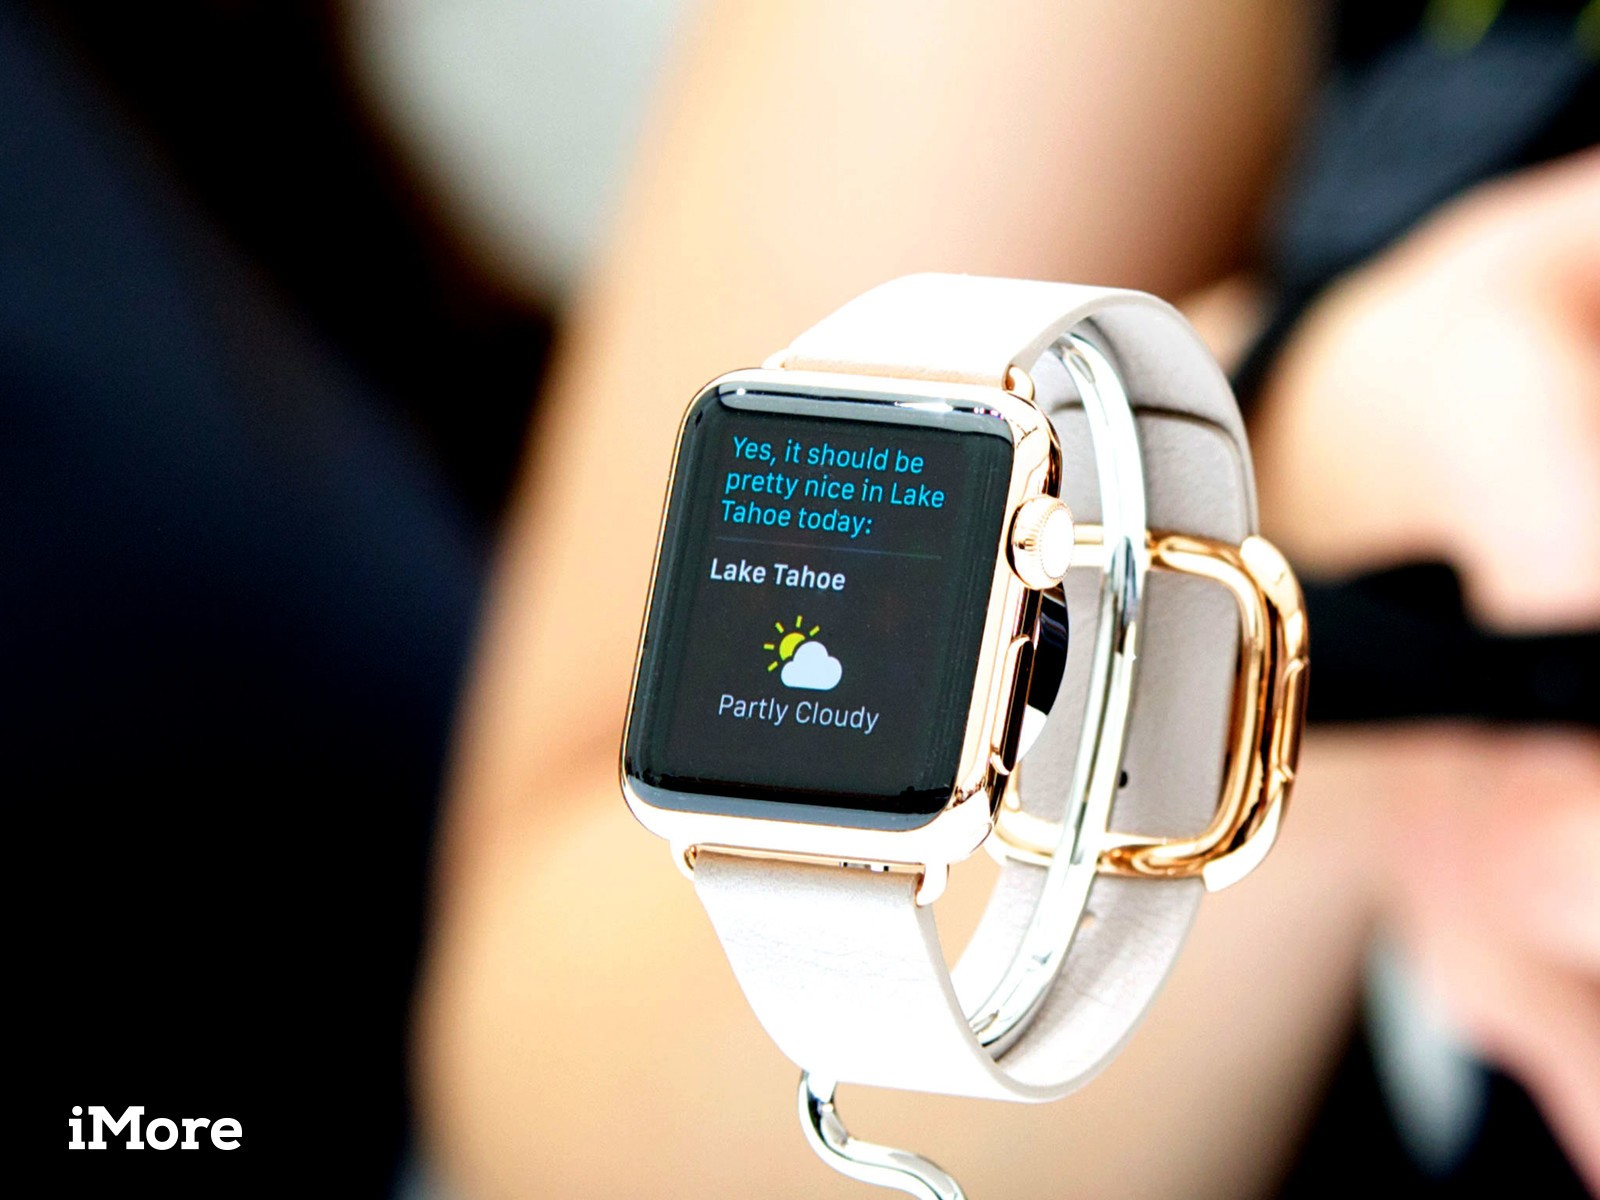 On Apple Watch pricing and strap swapping